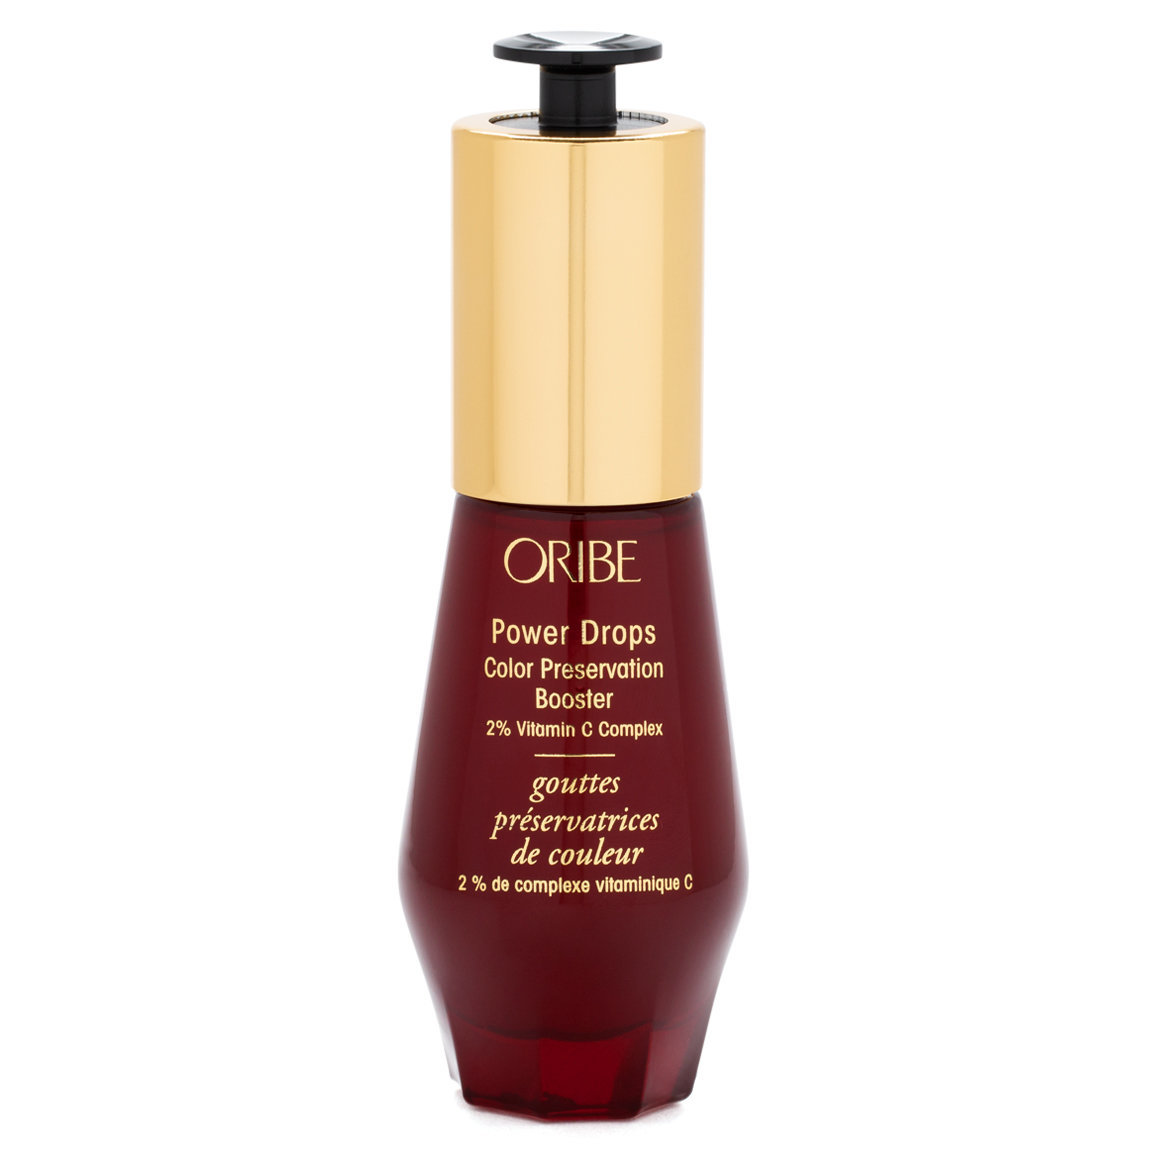 Oribe Power Drops Color Preservation Booster product smear.